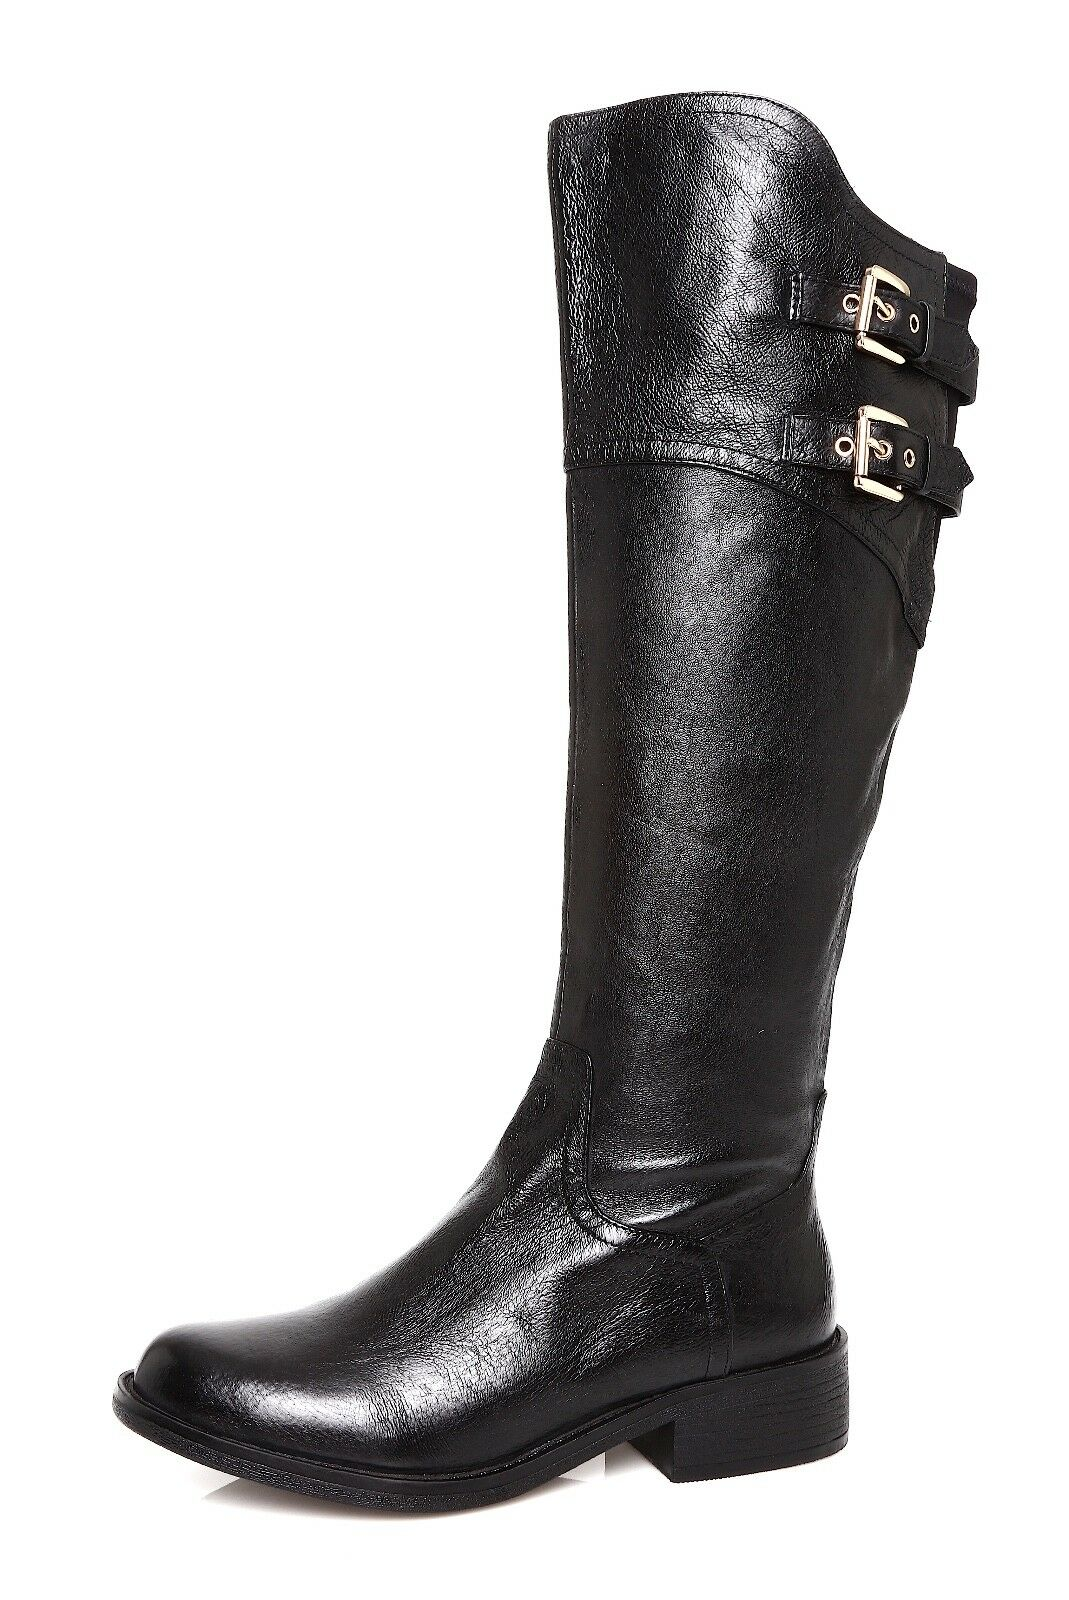 Steve Madden Ogreen Women's Leather Black Boot Sz 6.5 M 4438